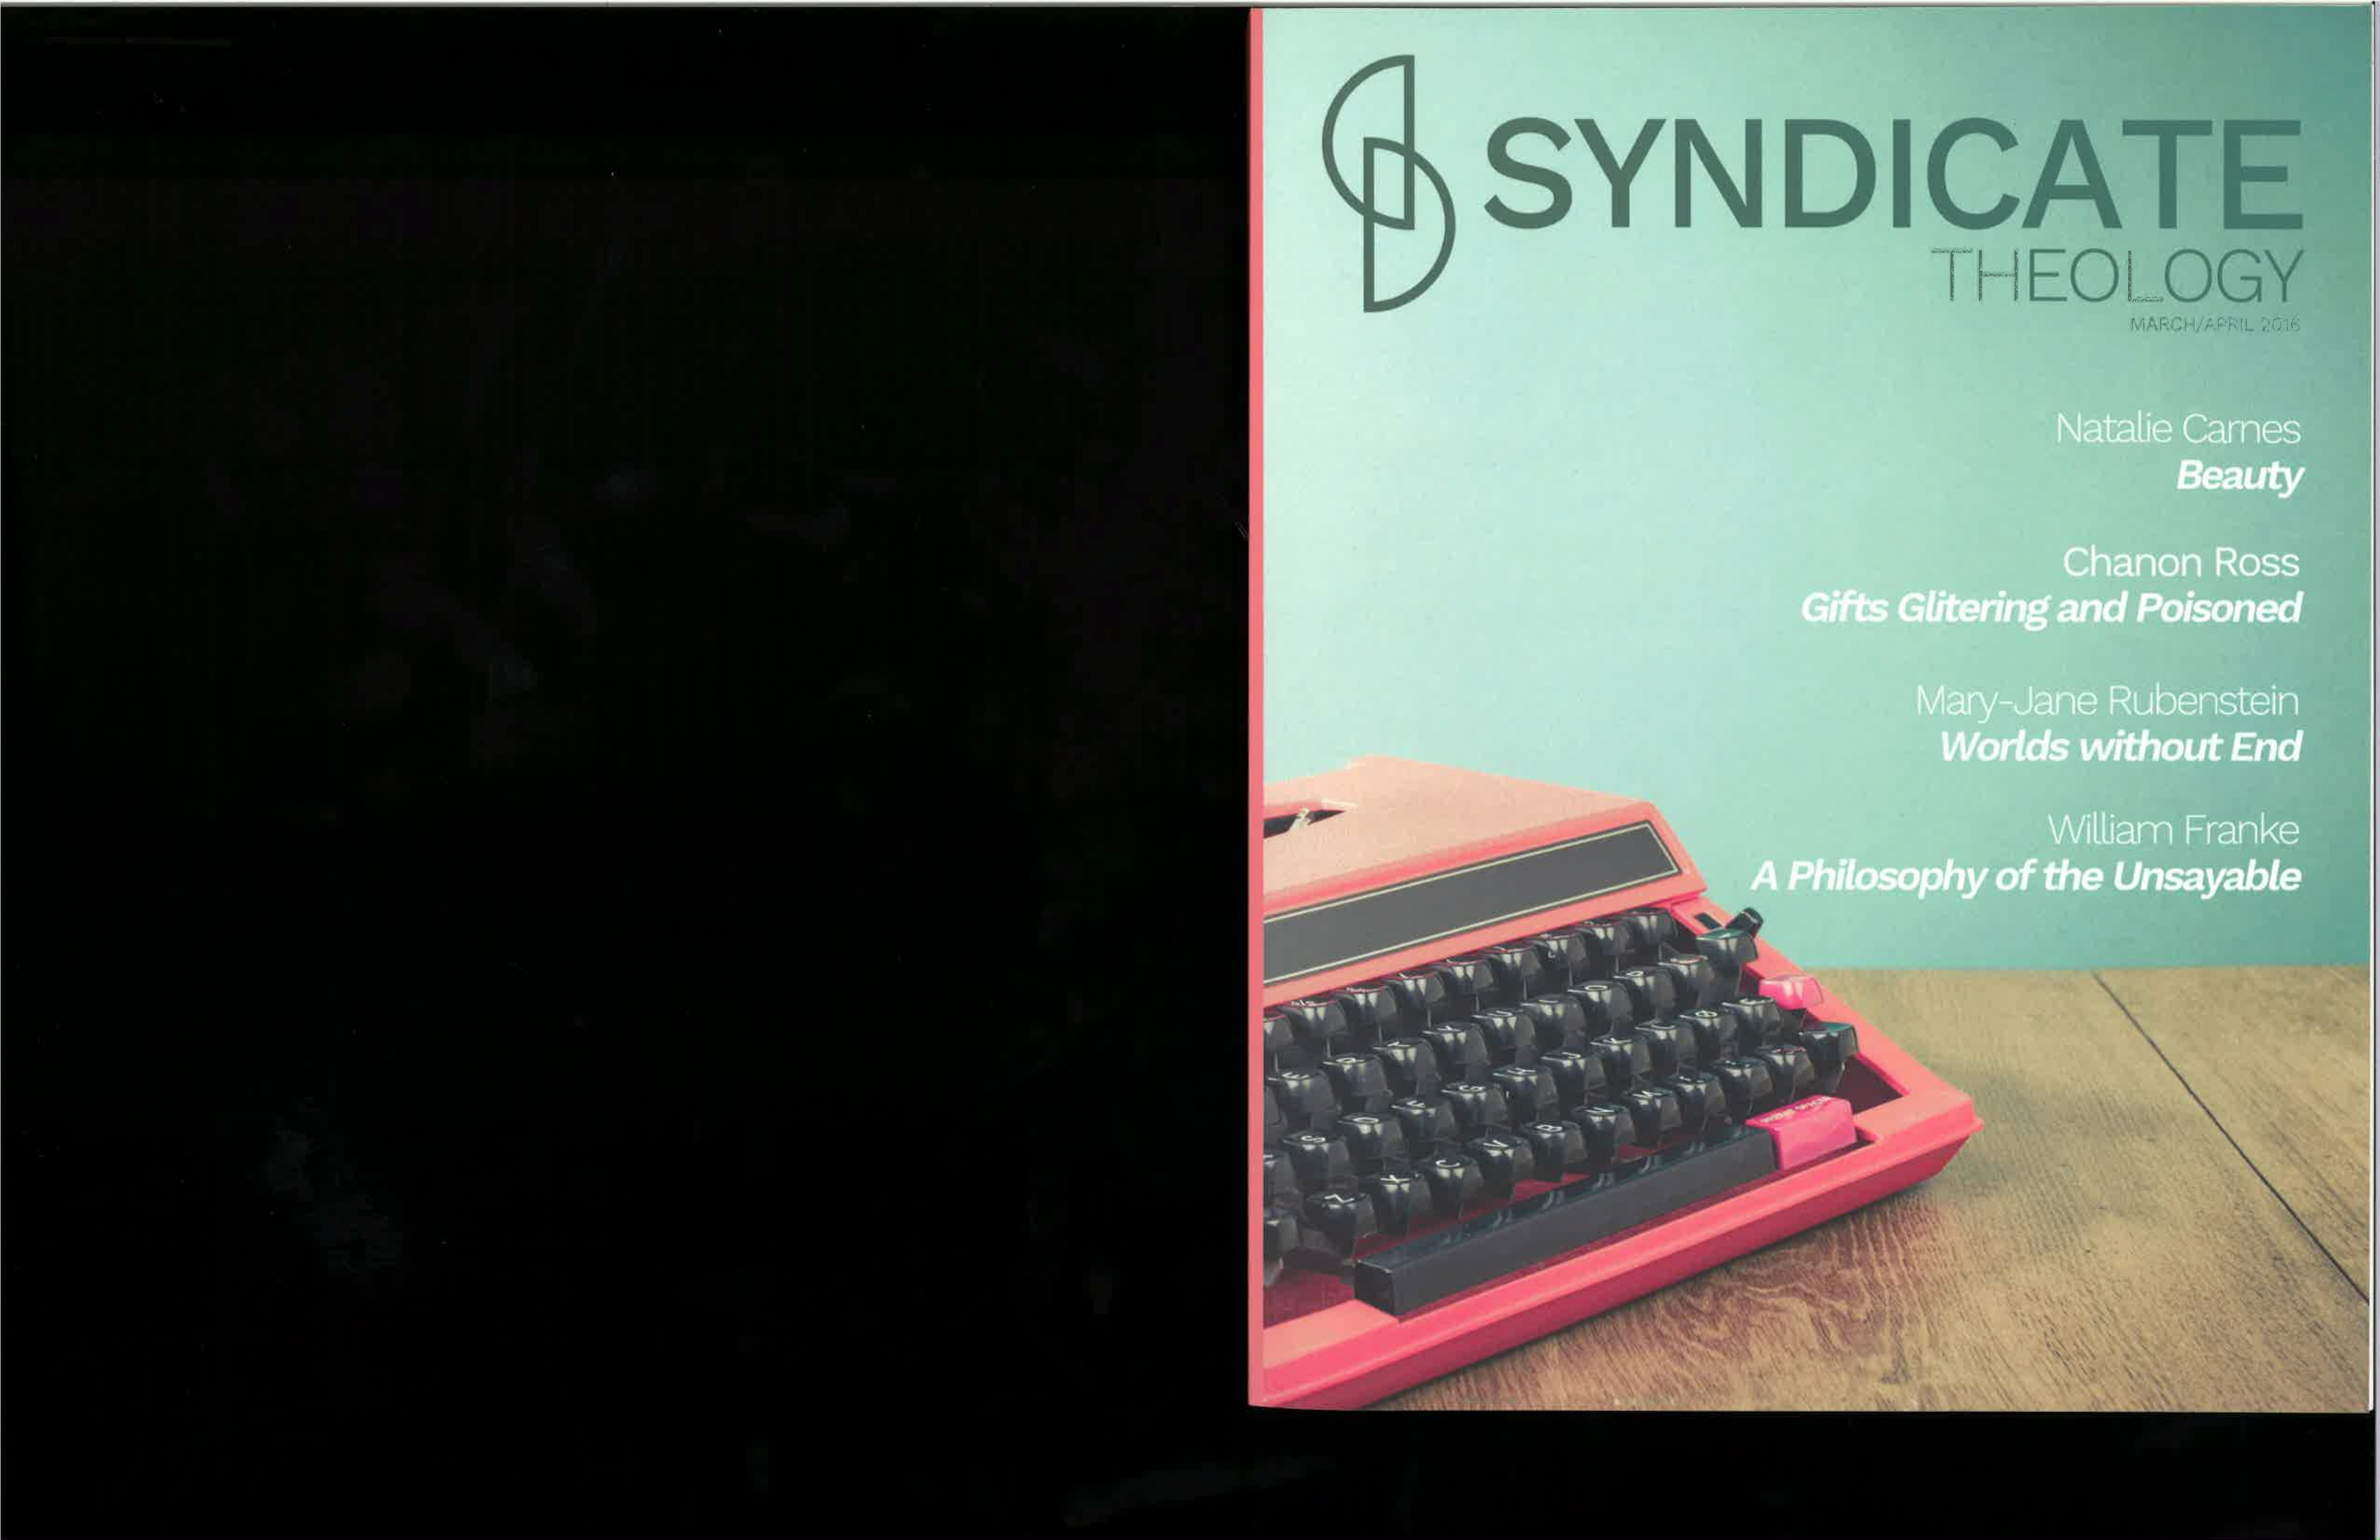 Syndicate theology cover_Page_1